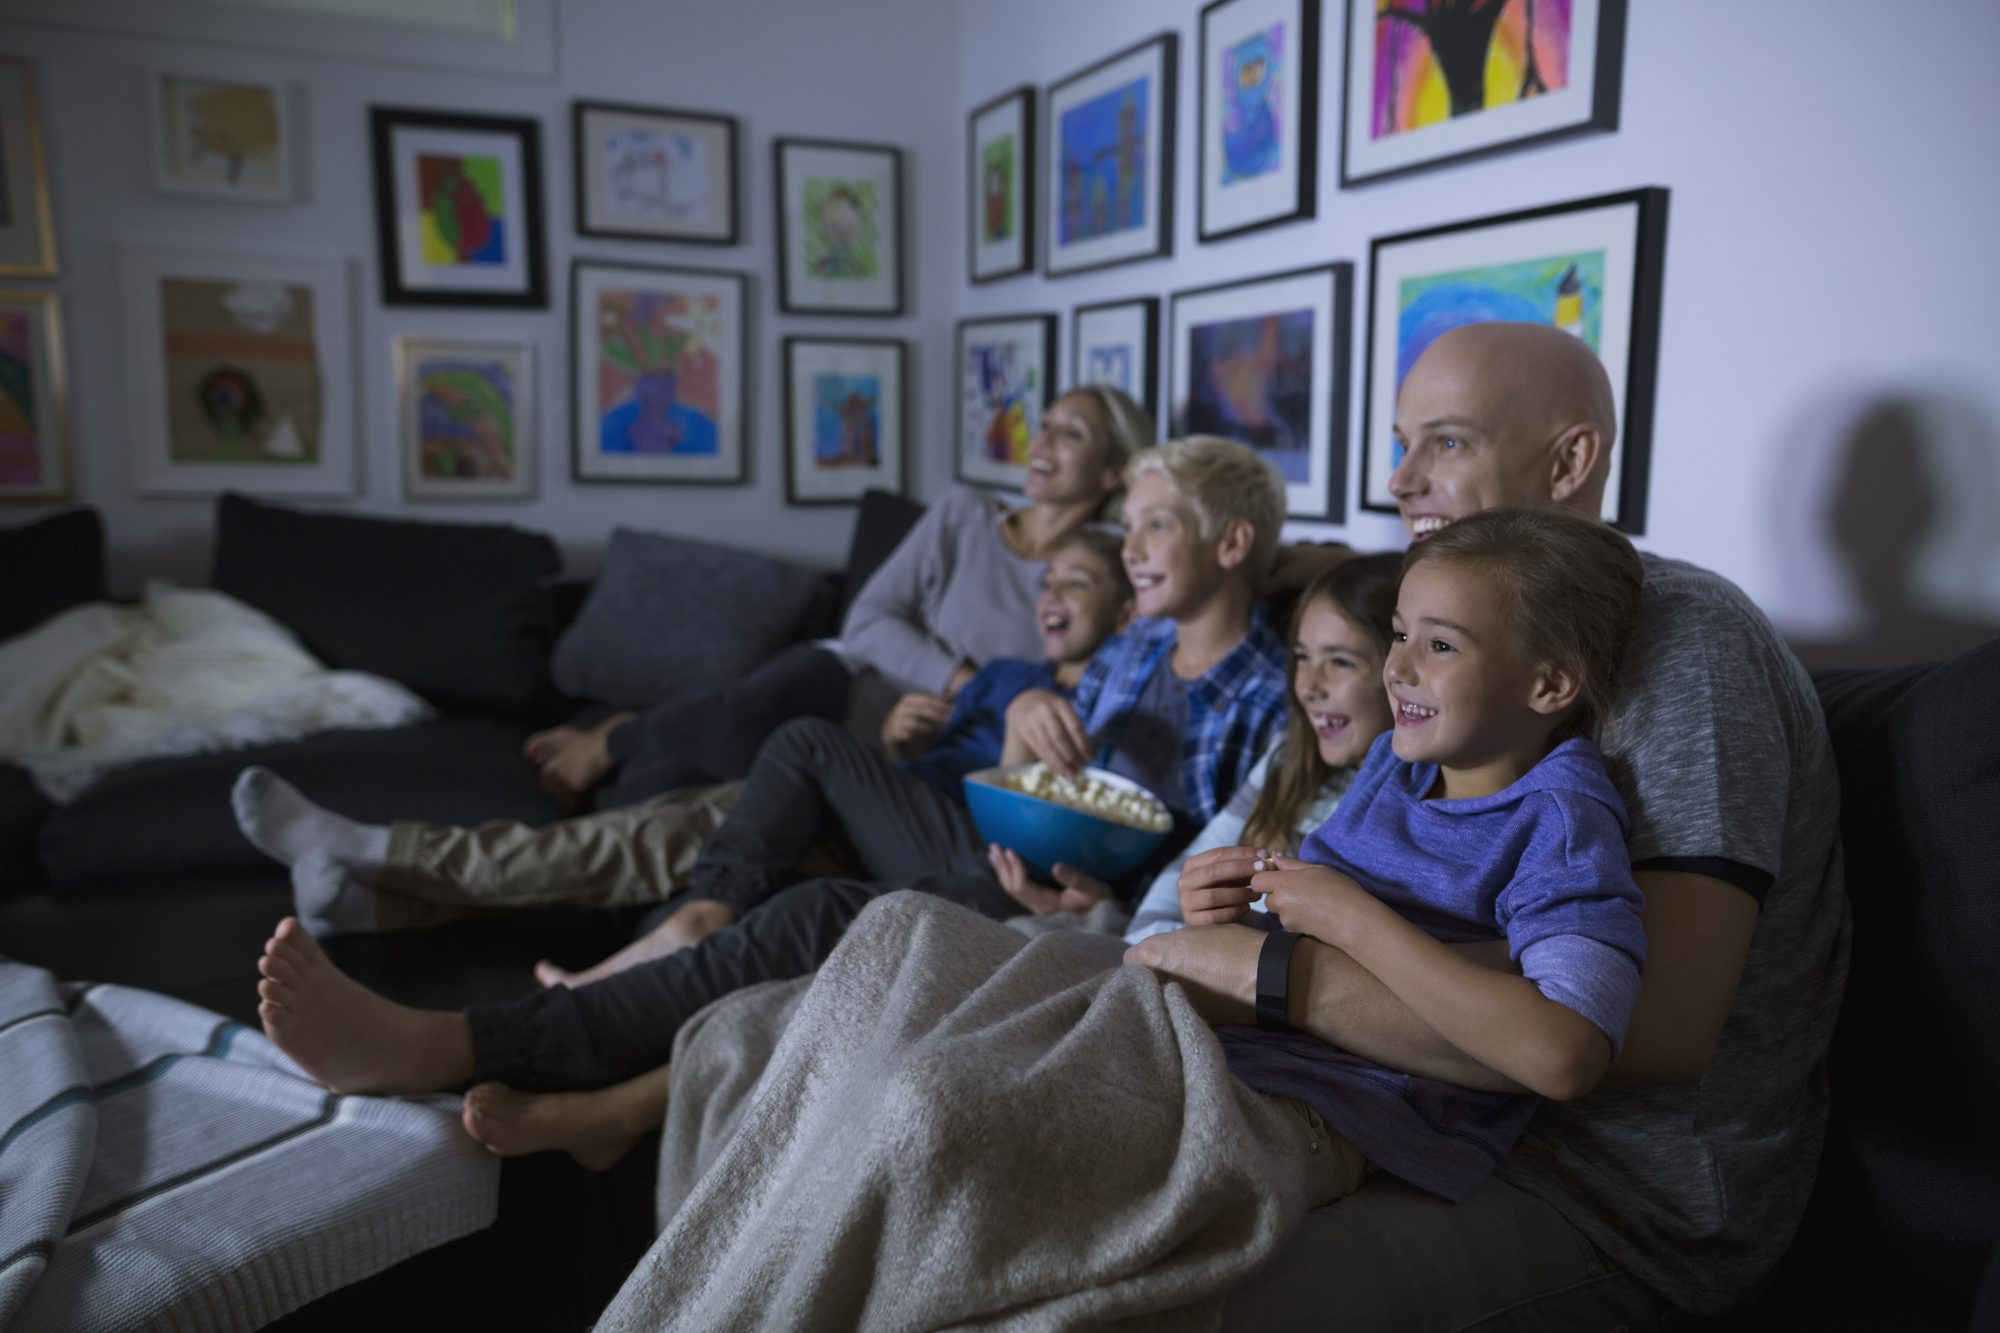 Family Watching TV on Couch with Popcorn